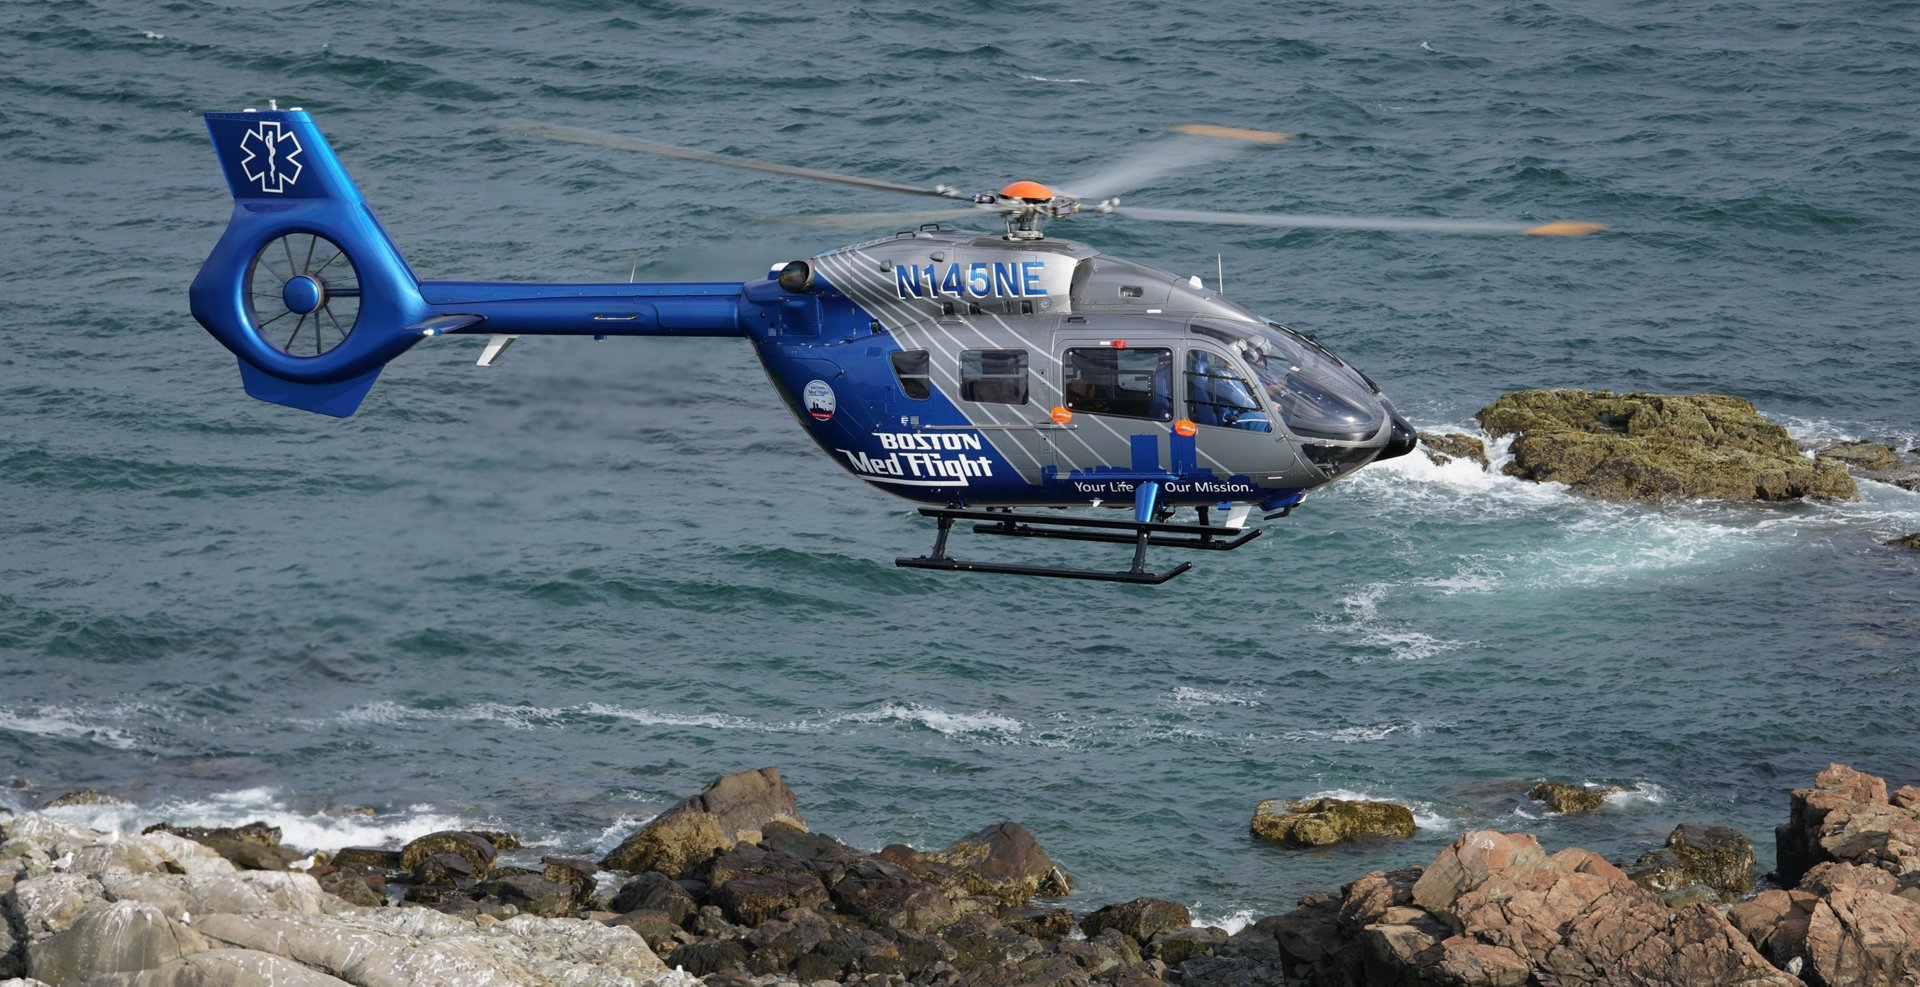 Airbus Helicopters added 250 helicopters to HCare Smart and Infinite contracts in 2019, increasing to 2,250 the number of aircraft now covered by a global HCare material management contract. This means 19% of Airbus Helicopters' worldwide fleet is now covered by HCare.